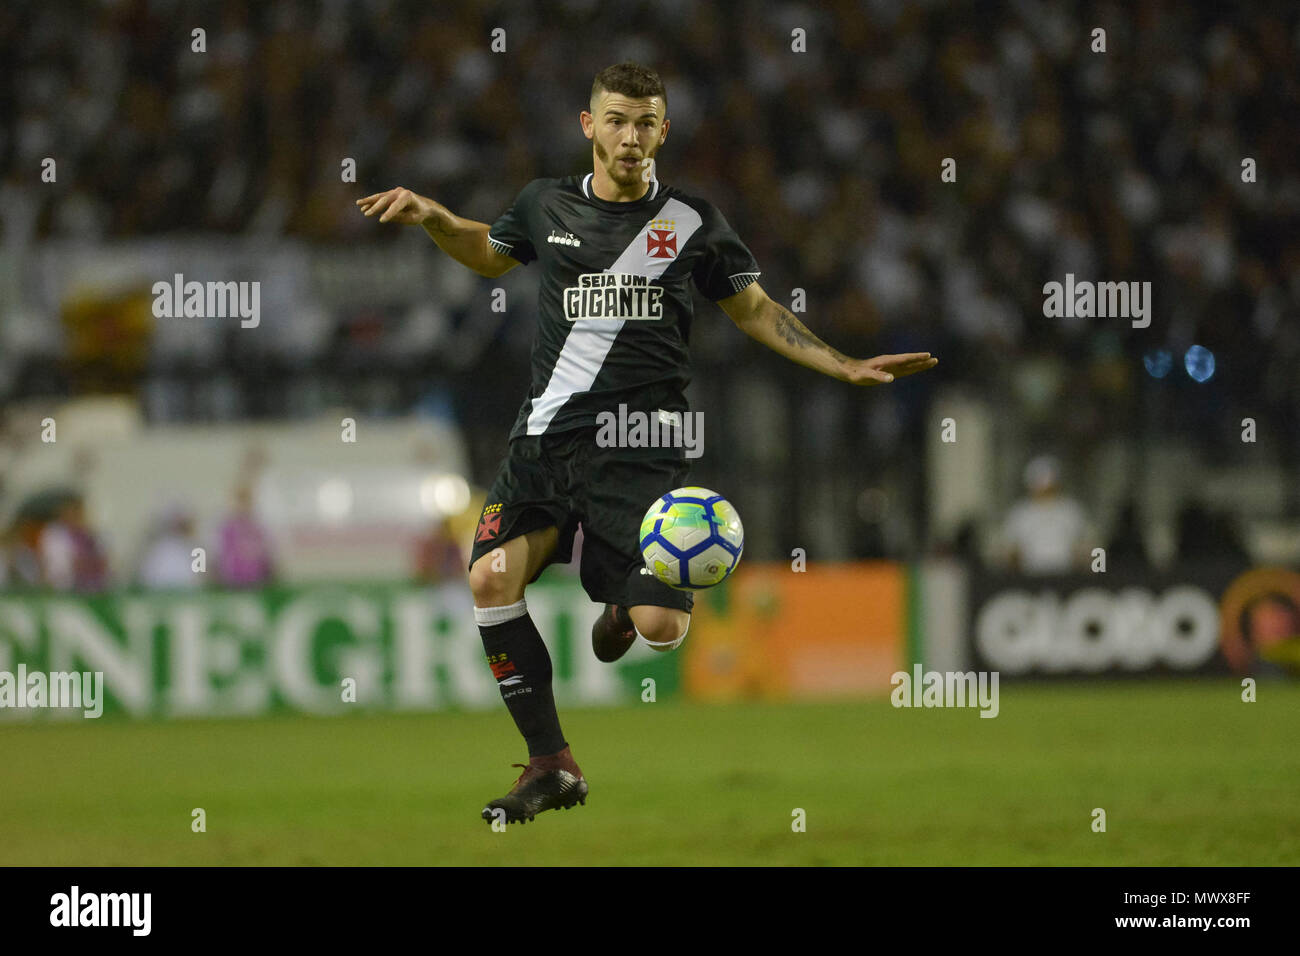 Page 3 - Luiz Gustavo High Resolution Stock Photography and Images - Alamy